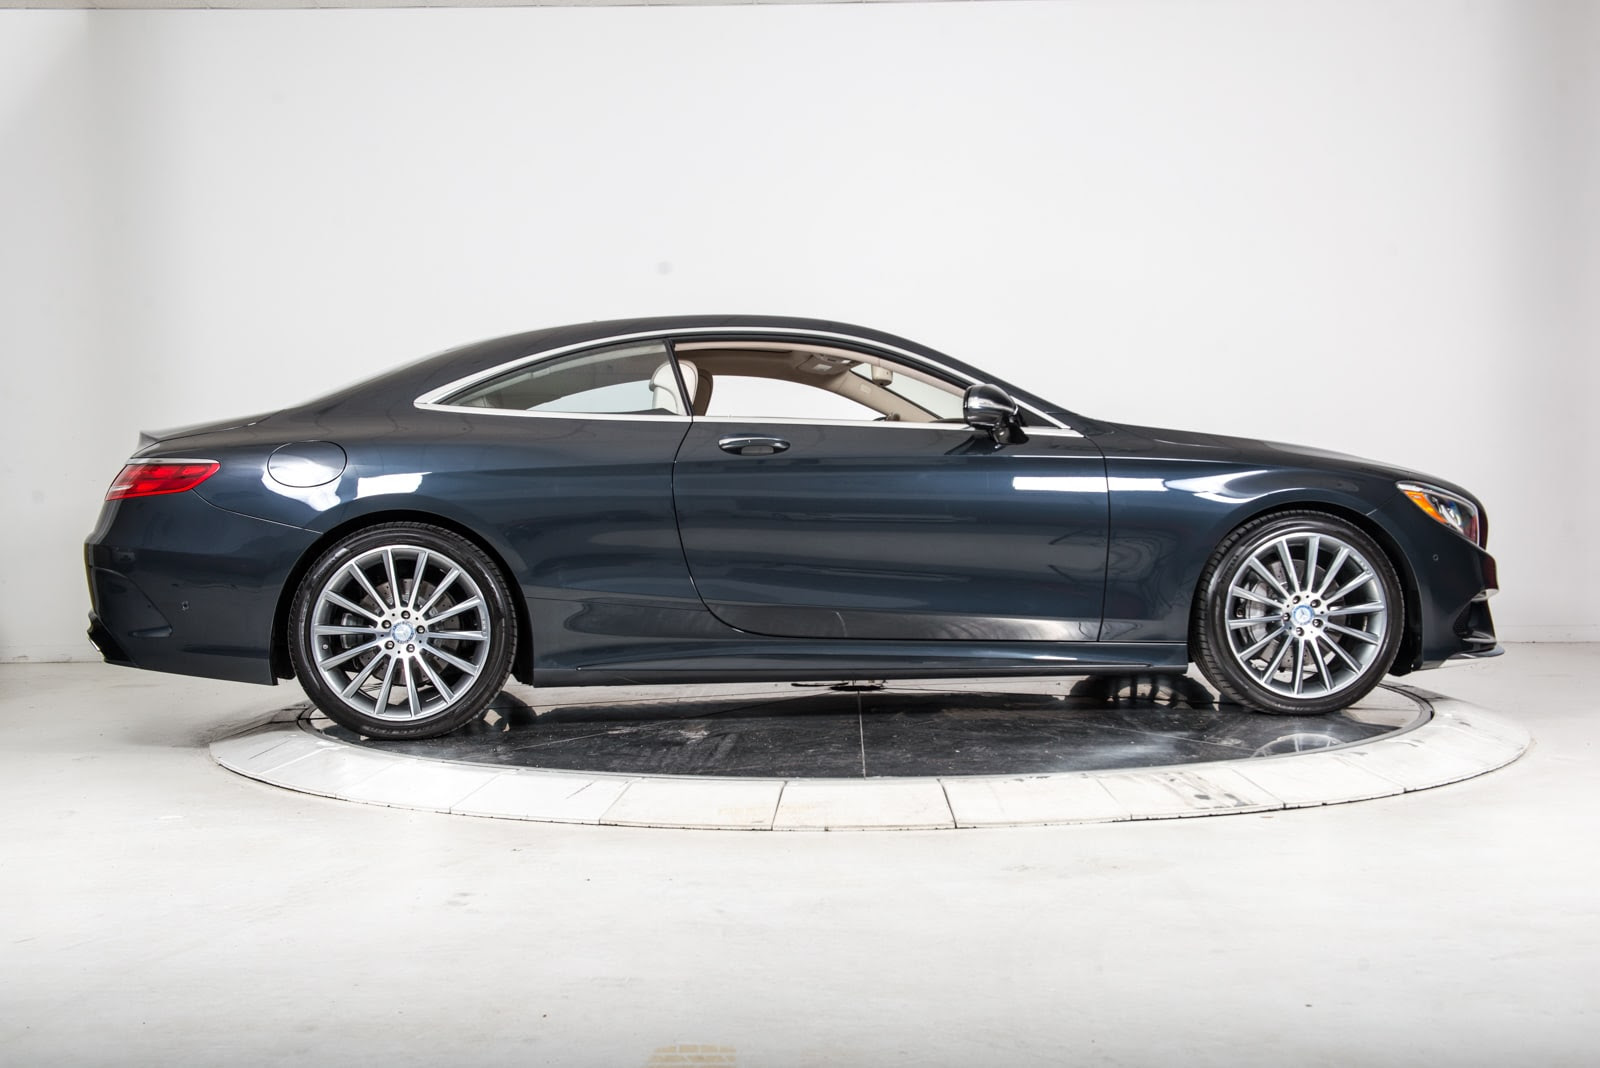 Used 2015 MERCEDES-BENZ S550 4MATIC COUPE For Sale ...